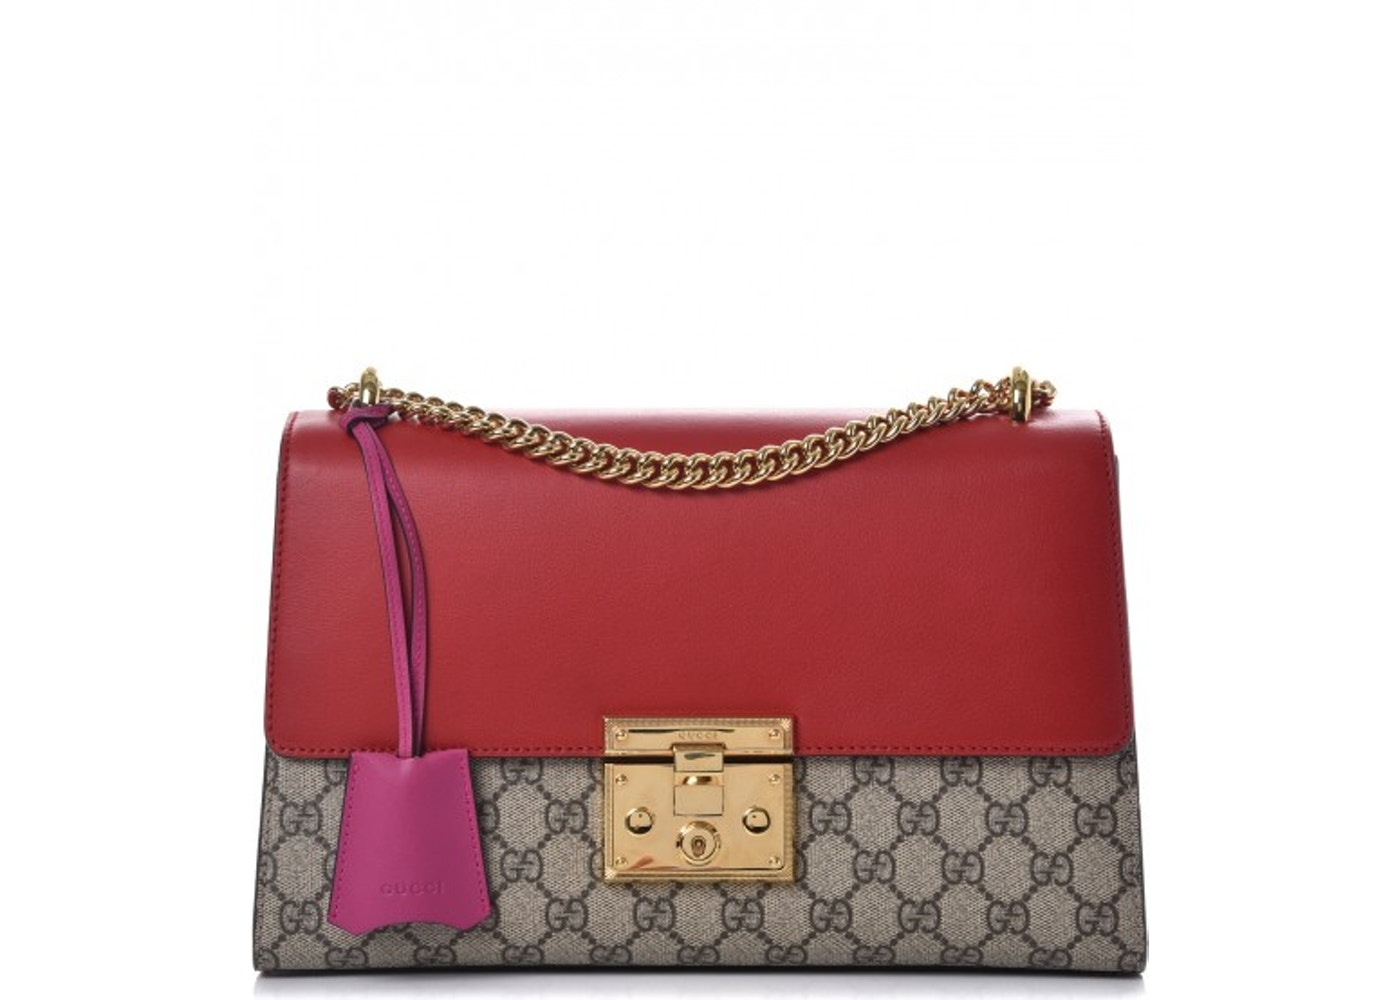 2b27efafb350 Gucci Padlock Monogram GG Supreme Multicolor Medium Hibiscus ...